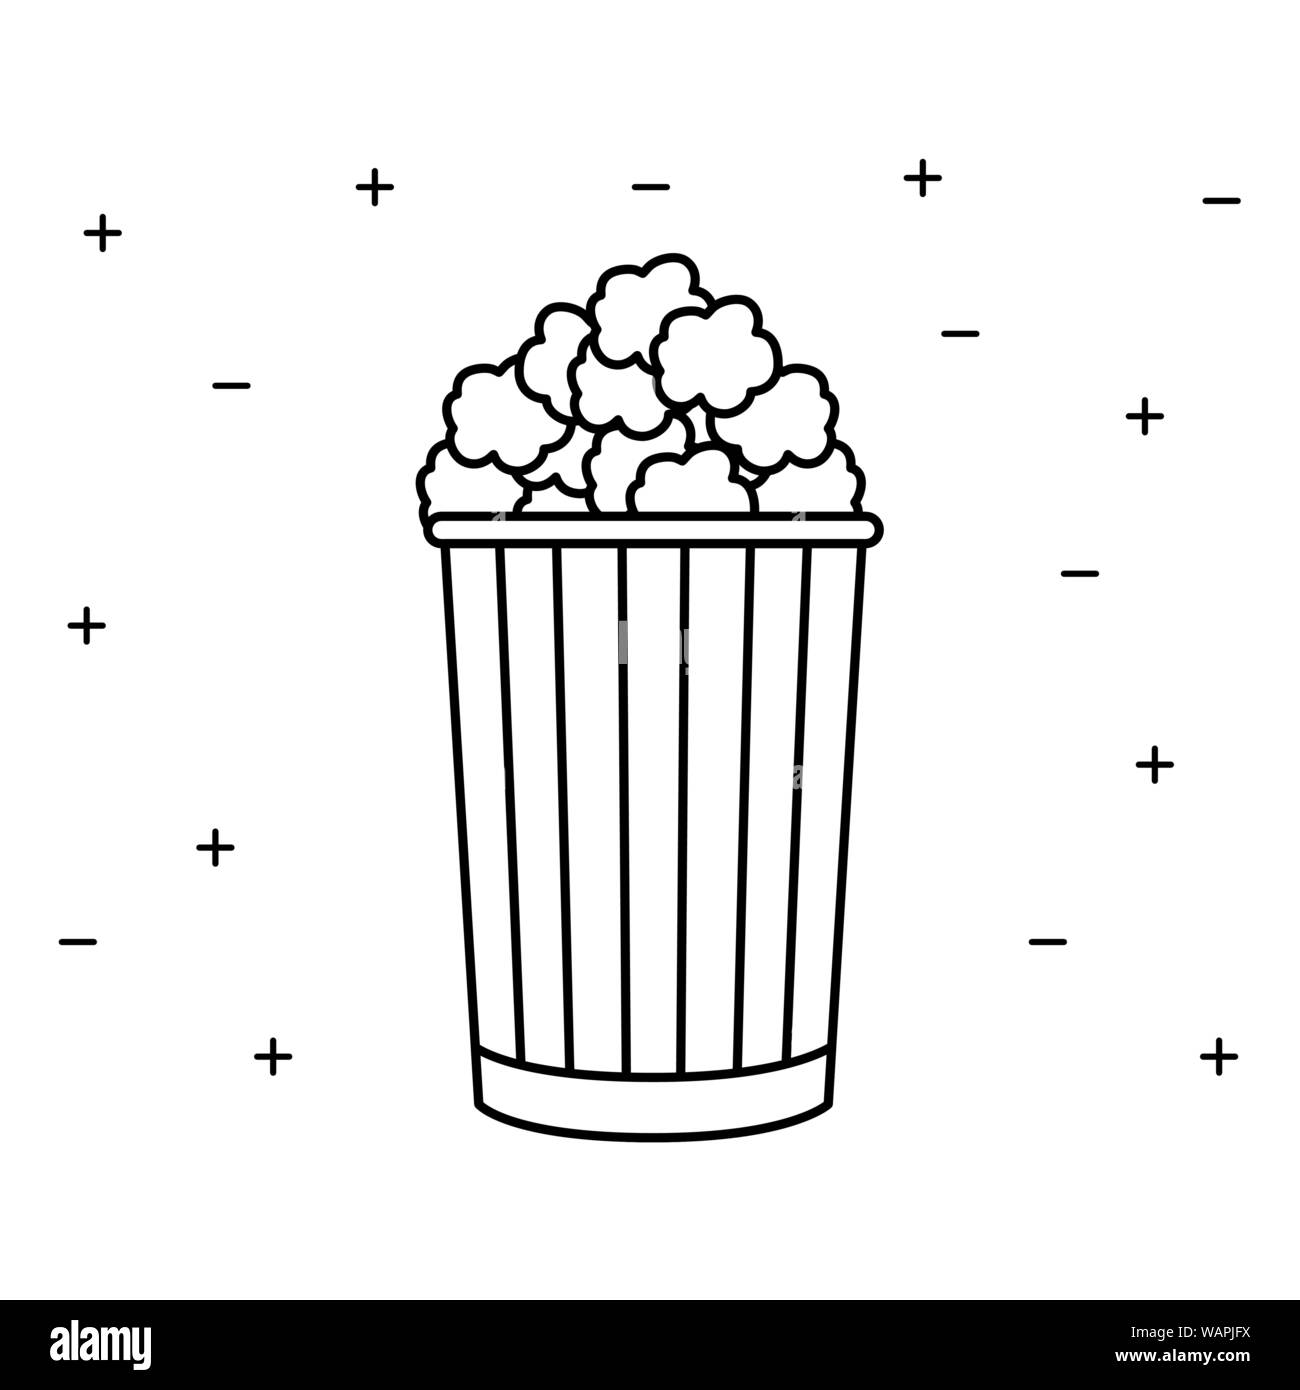 Coloring Pages: Popcorn container coloring pages | New 51++ Printable Sheets  #popcorncontainerclipart #popcorncontain… | Colored popcorn, Food coloring  pages, Coloring pages | 1390x1300